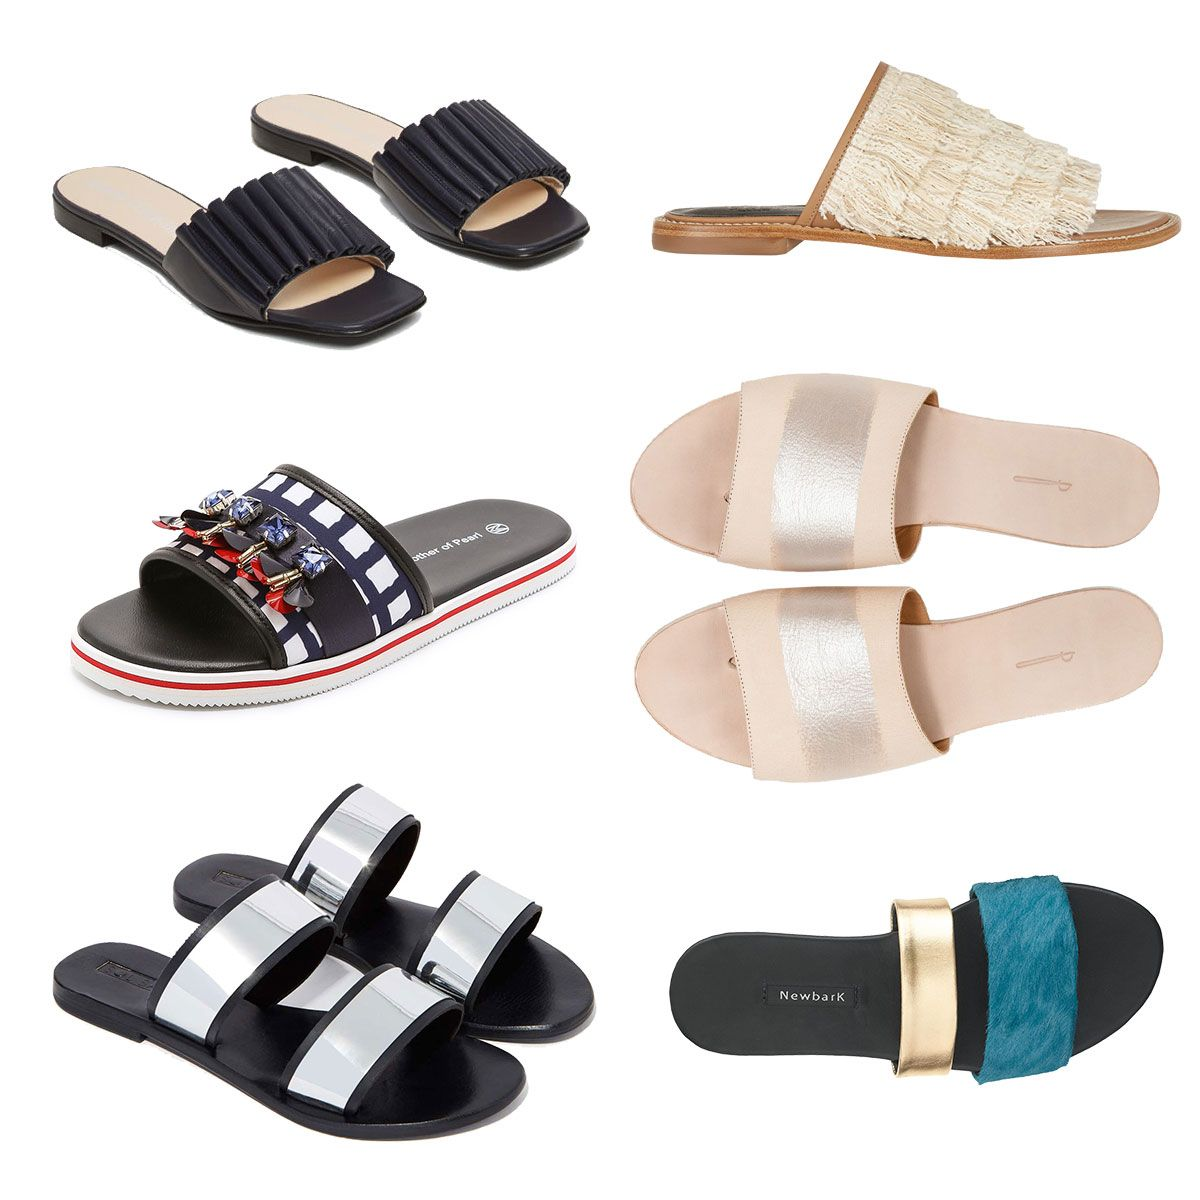 51f68a12bd7dd0 Fancy Slides Not Meant for the Shower - 44 of Spring s Chicest Shoes for  Every Occasion - The Cut